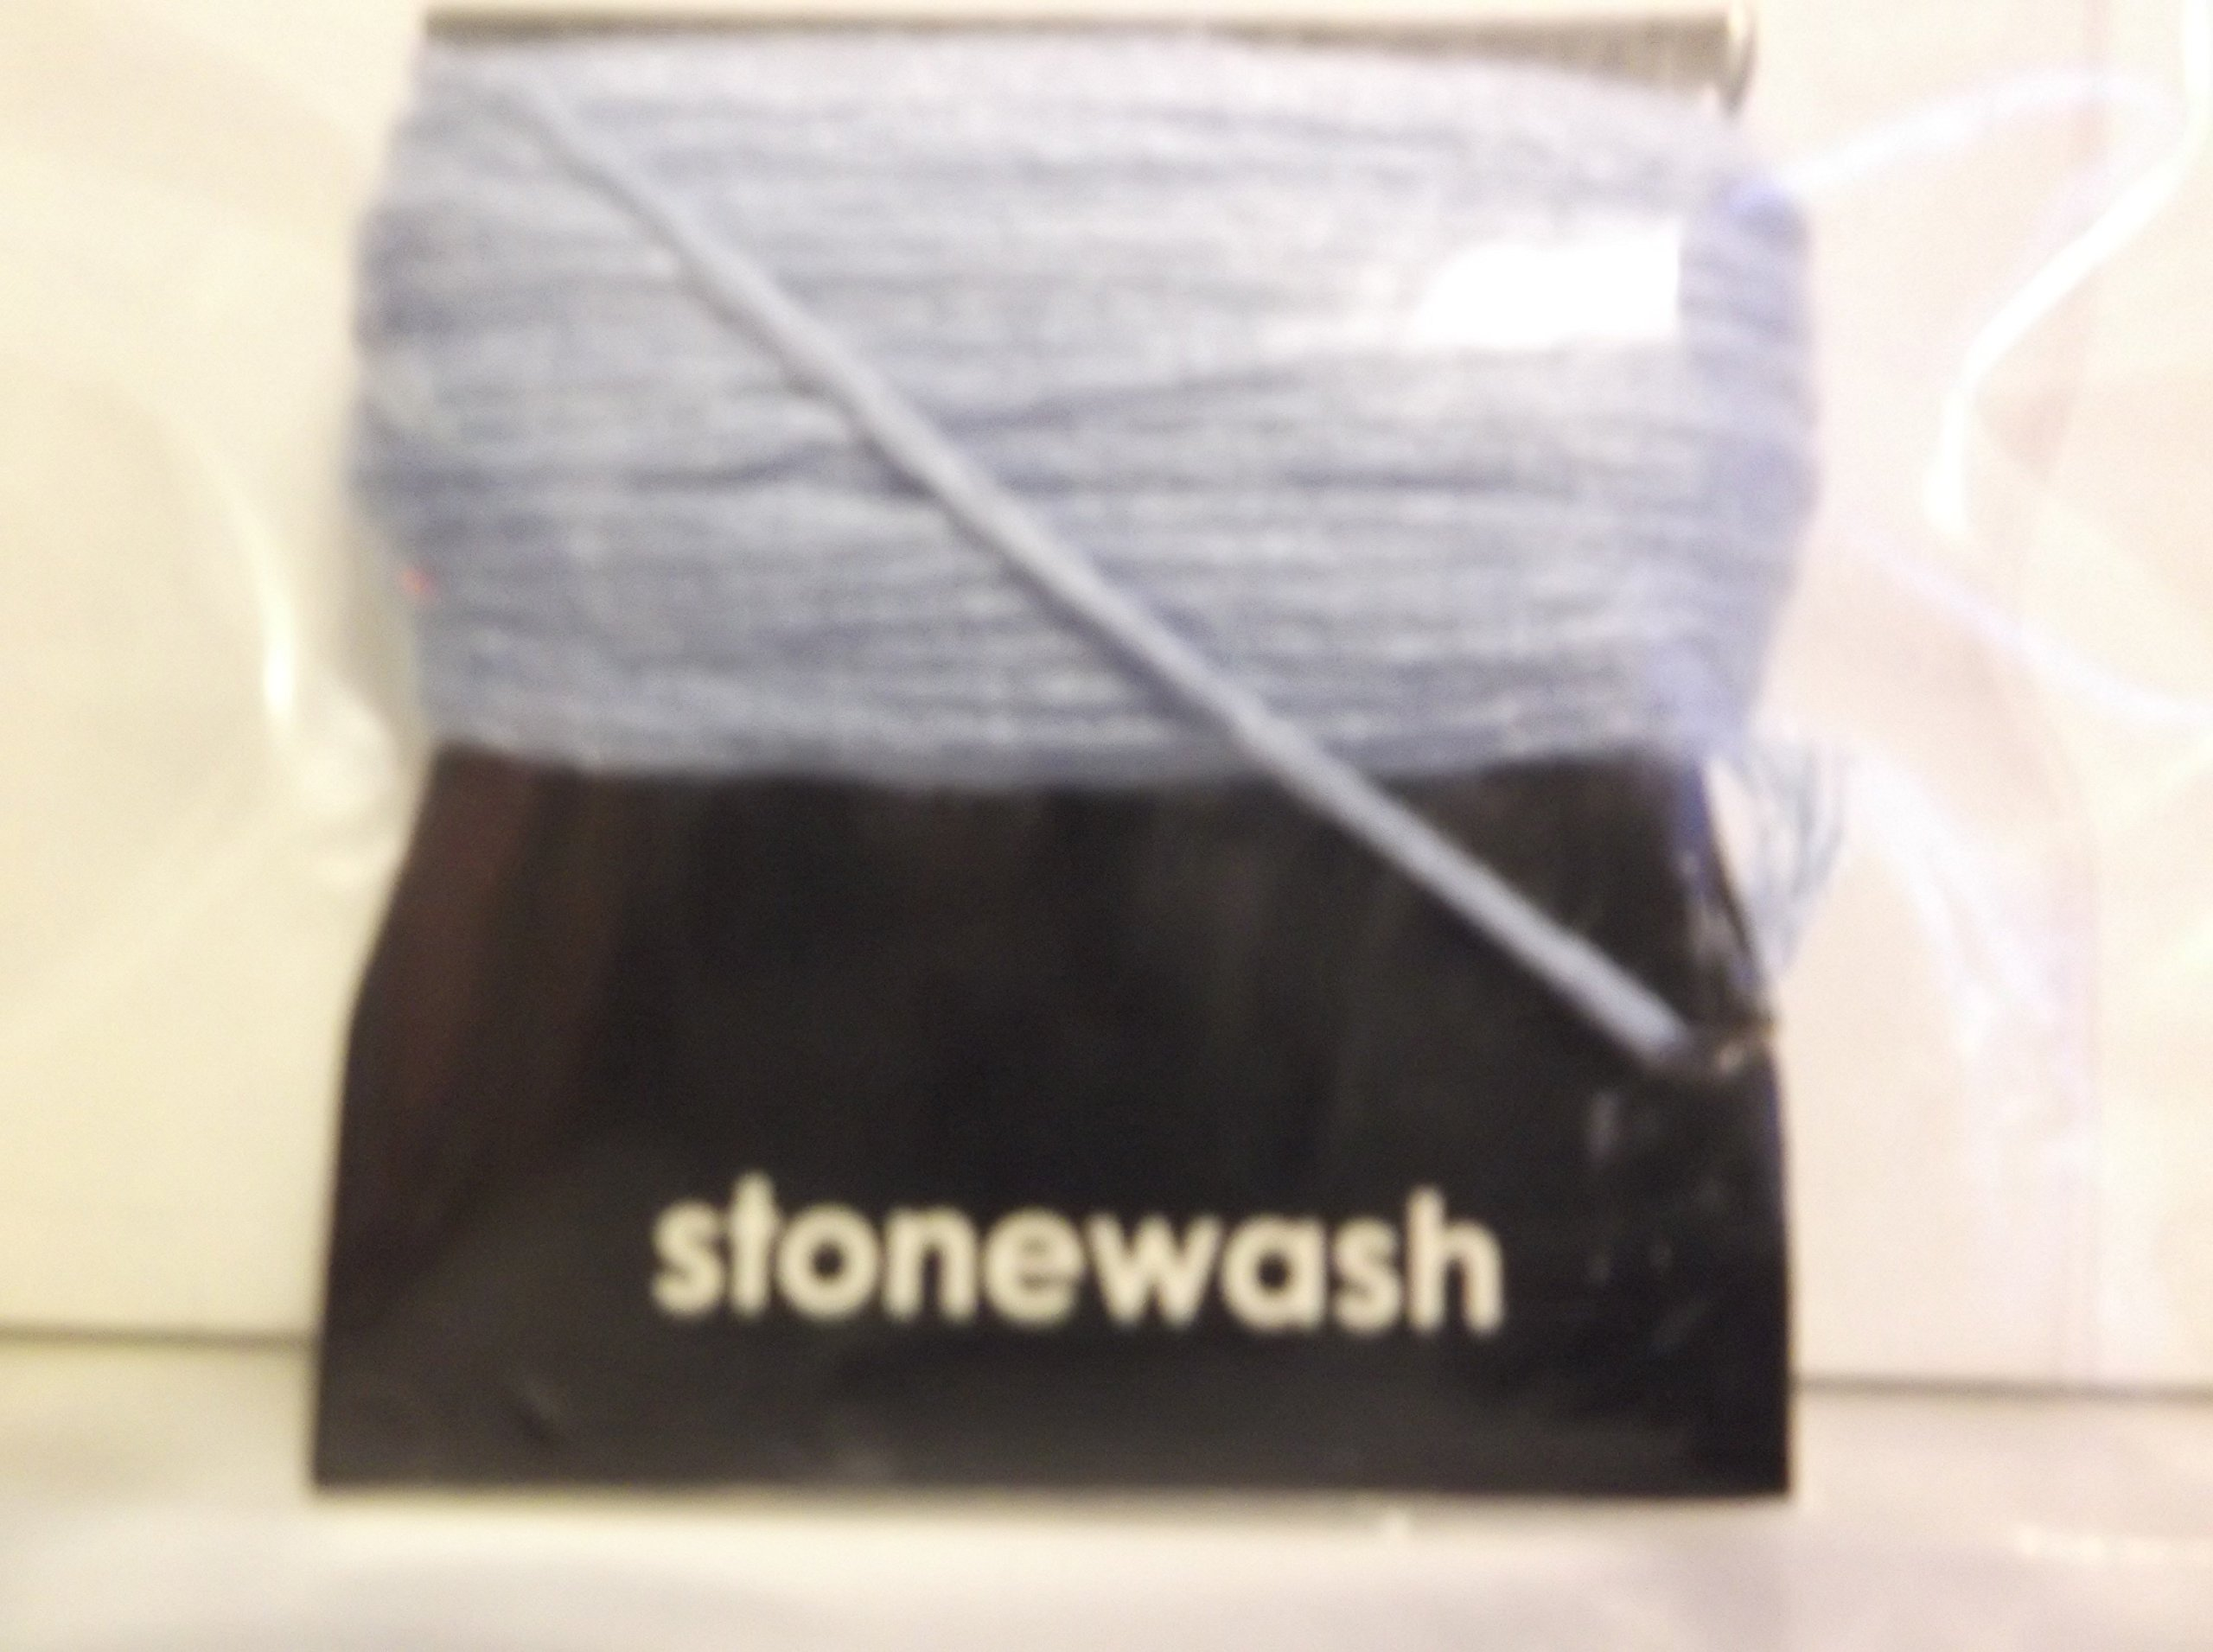 Stonewash *Blue* Embroidery Floss